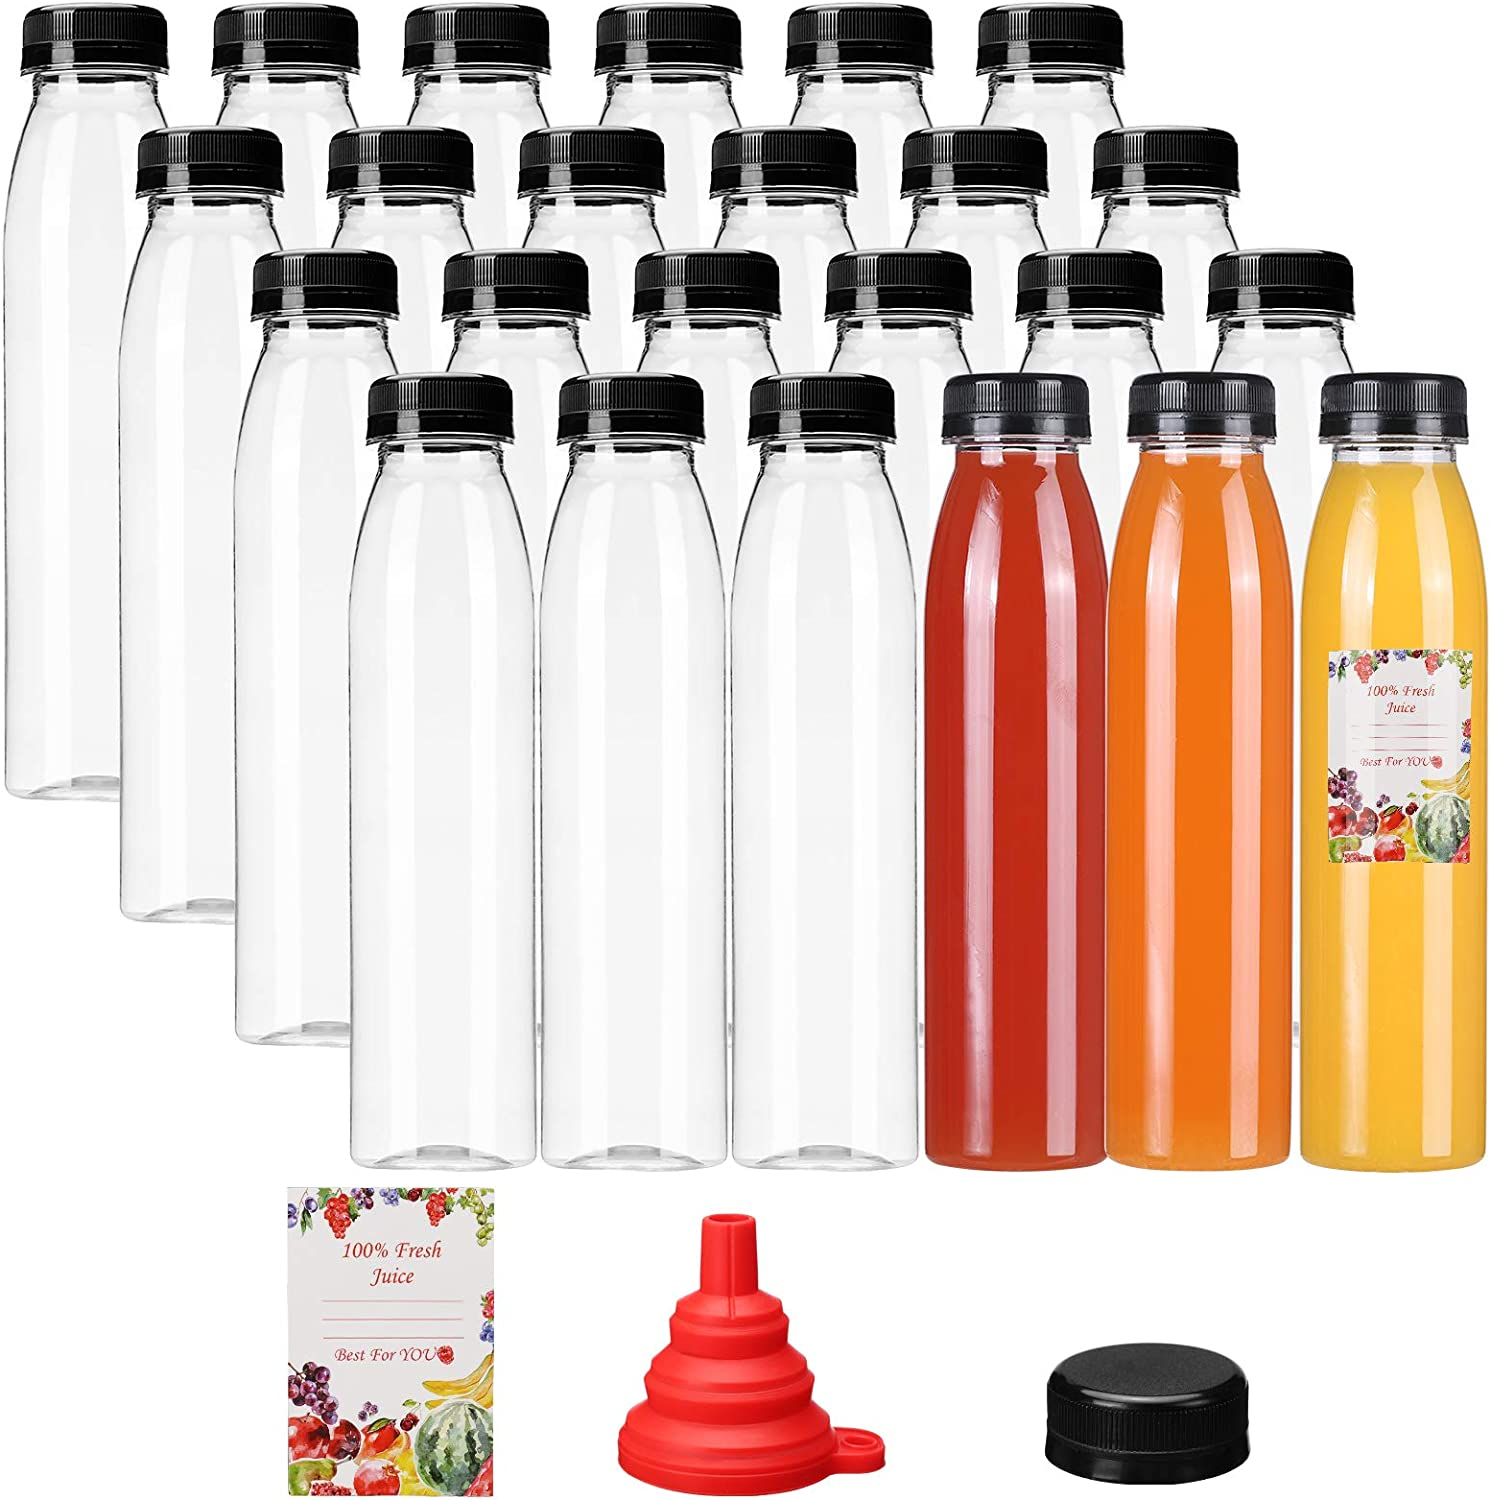 24pcs Empty PET Plastic Juice Bottles 12oz Cone Reusable Clear Disposable Containers with Black Tamper Evident Caps Lids for Juice, Milk and Other Beverages